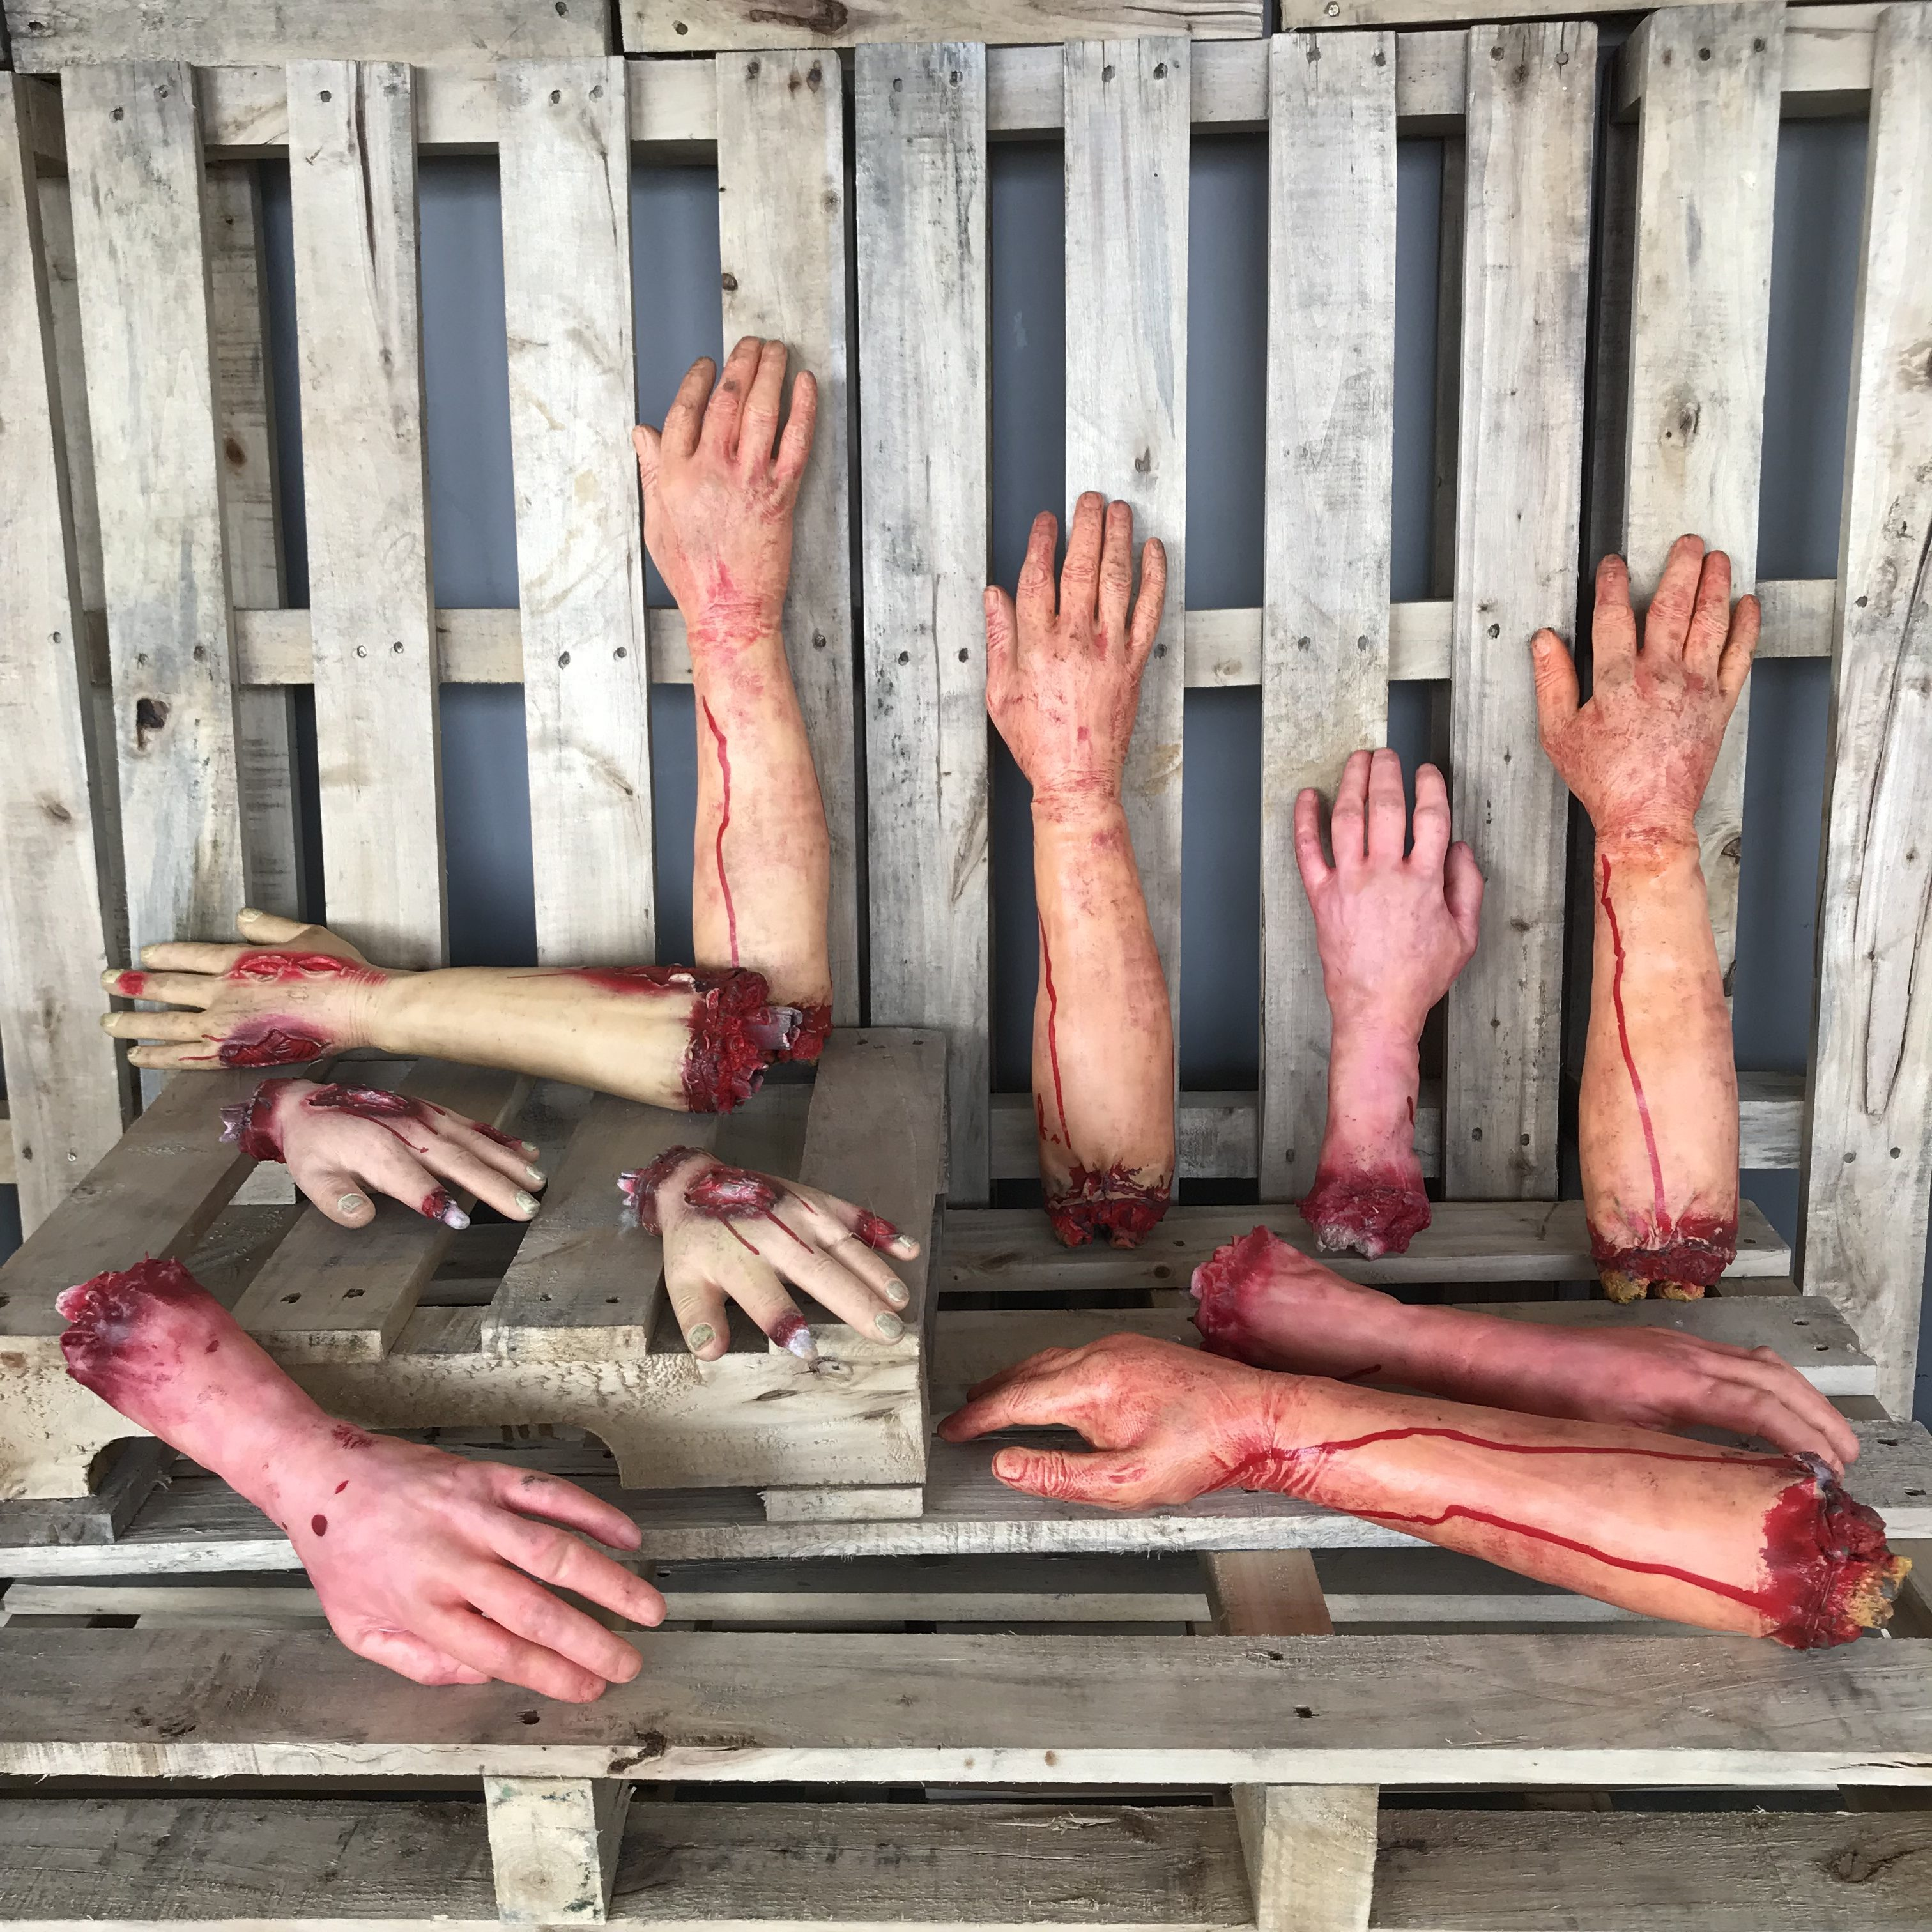 singapore-event-management-halloween-props-rental-limbs-hands-and-arms-set